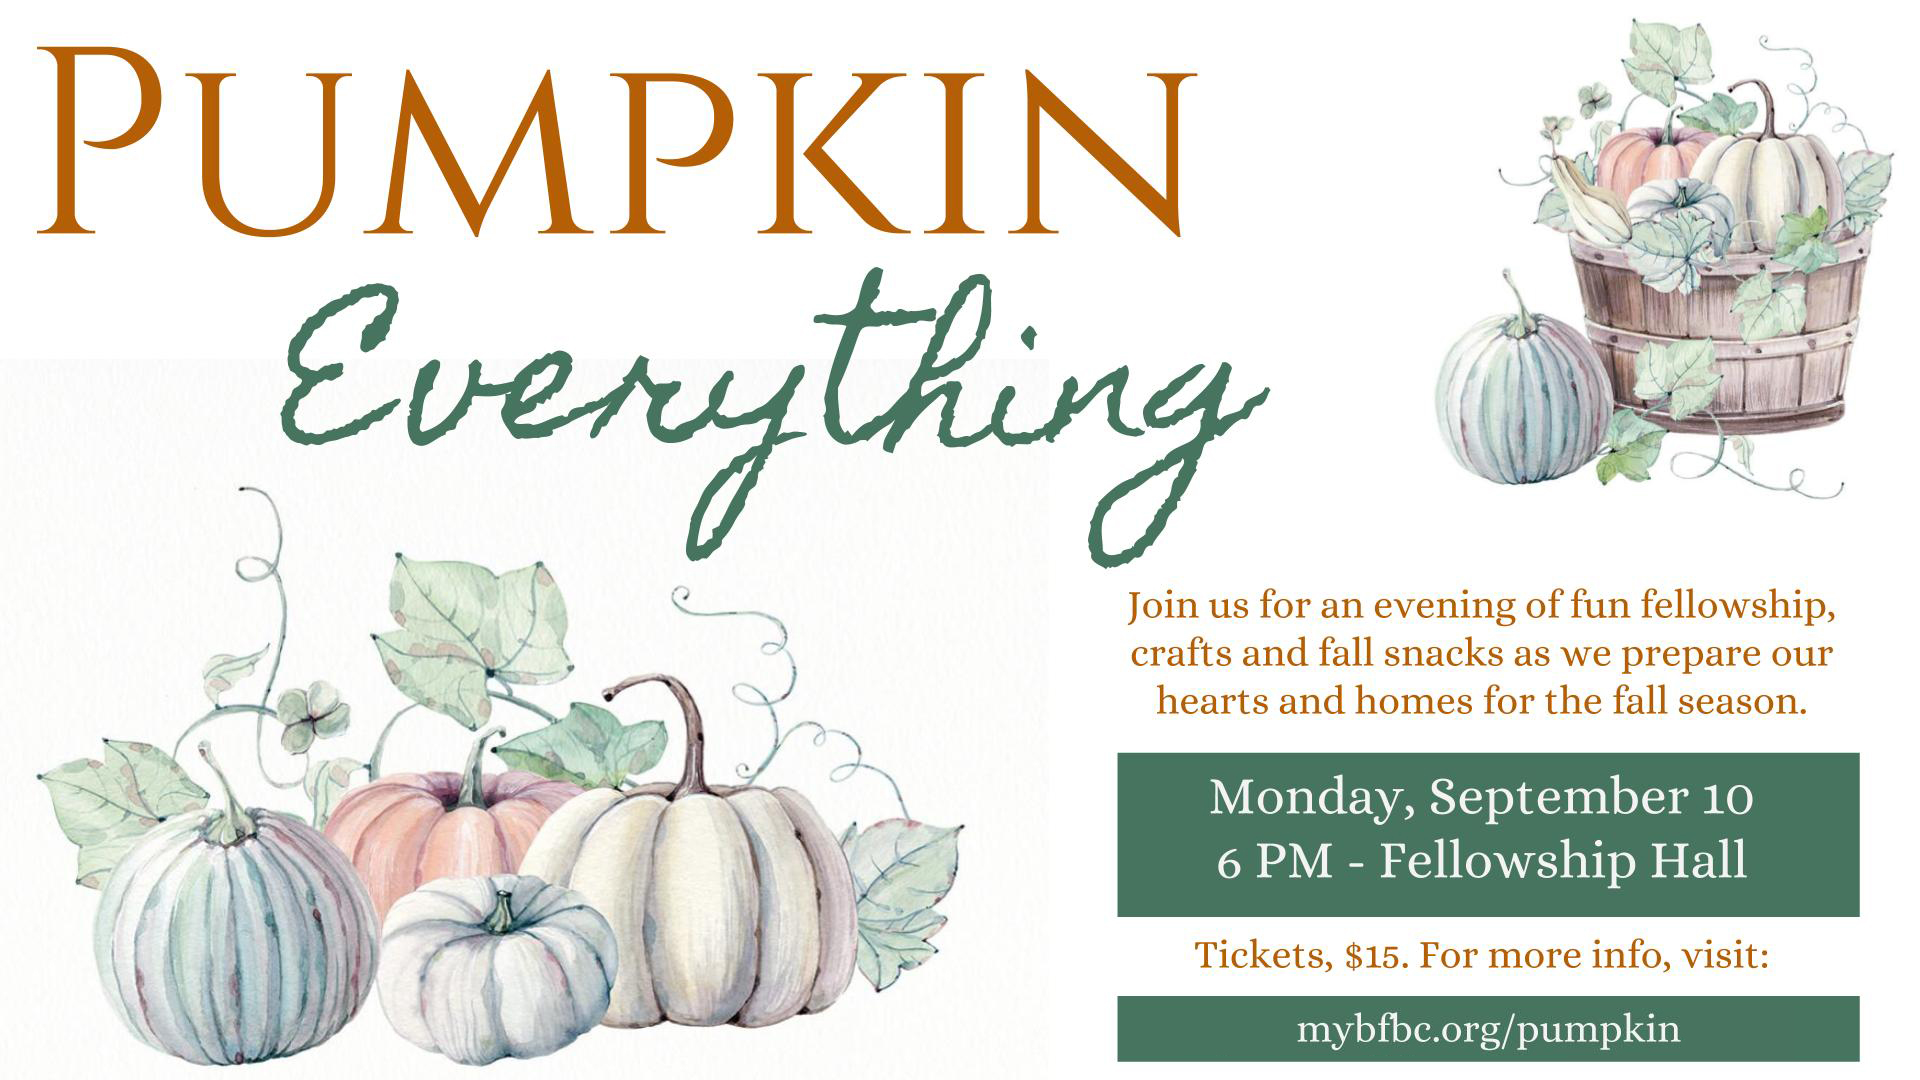 Pumpkin Everything 2018 for WG.jpg